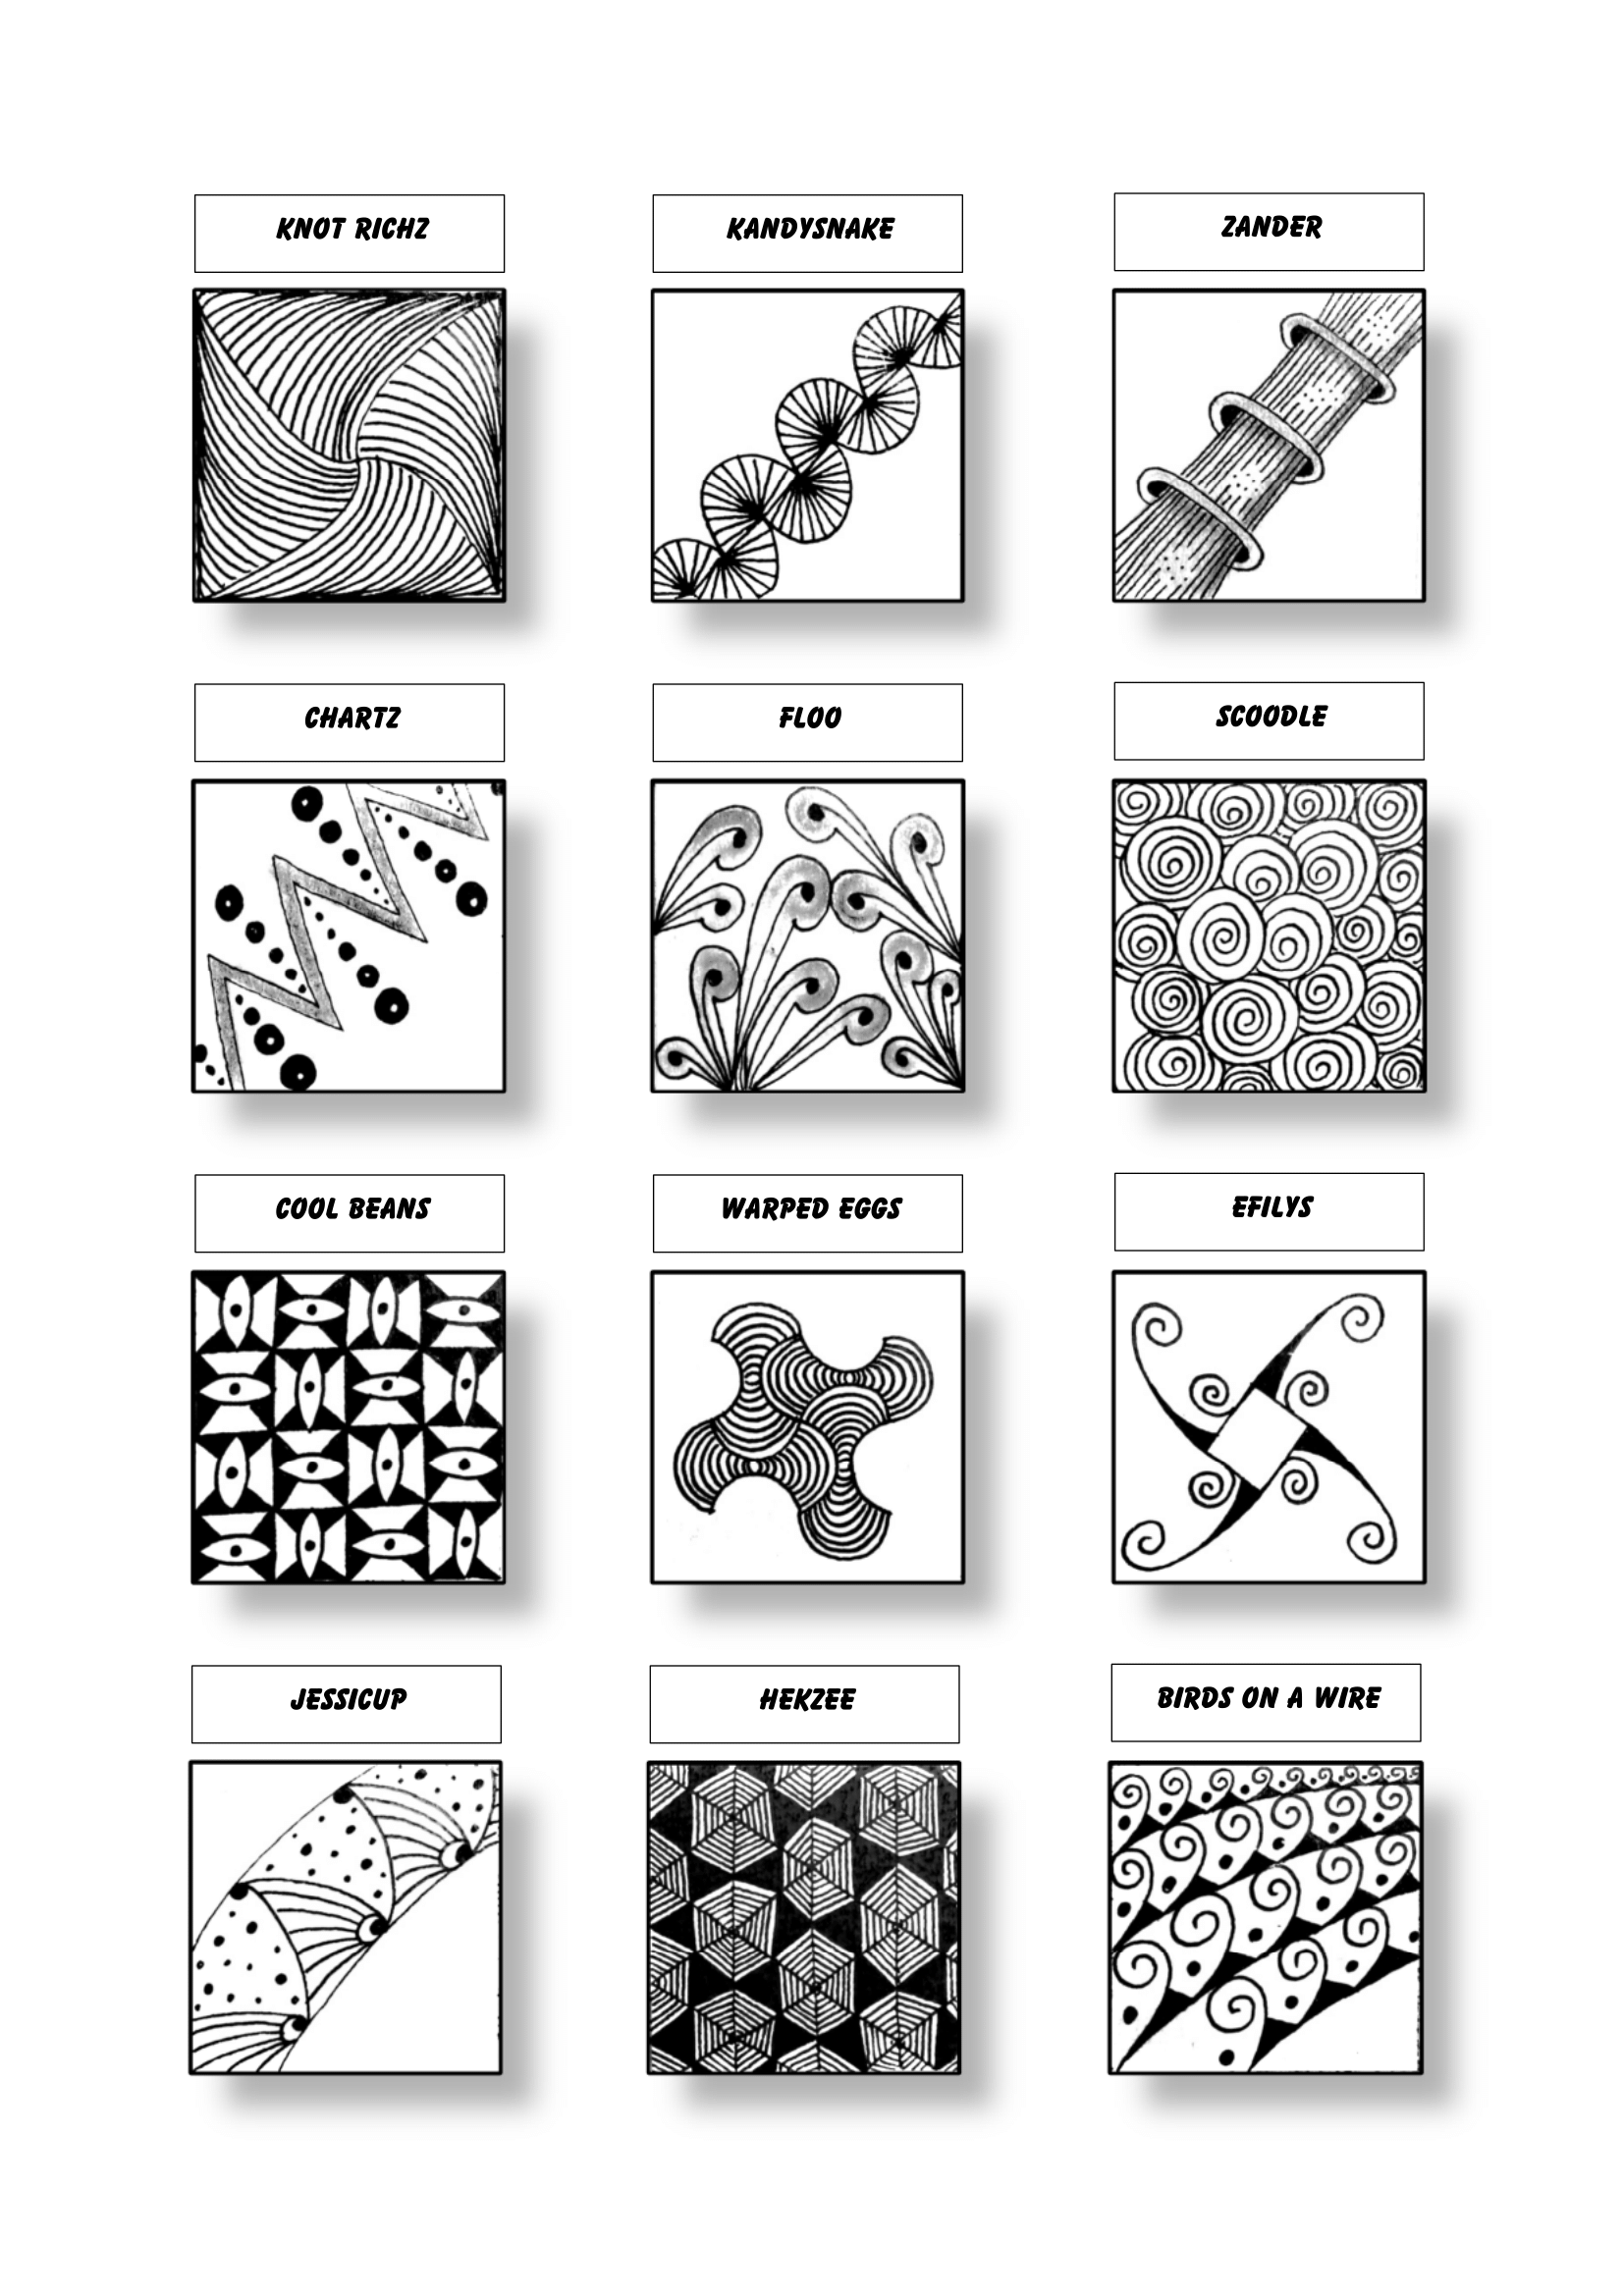 Zentangle Pattern Sheet 18 Patterns Knot Richz